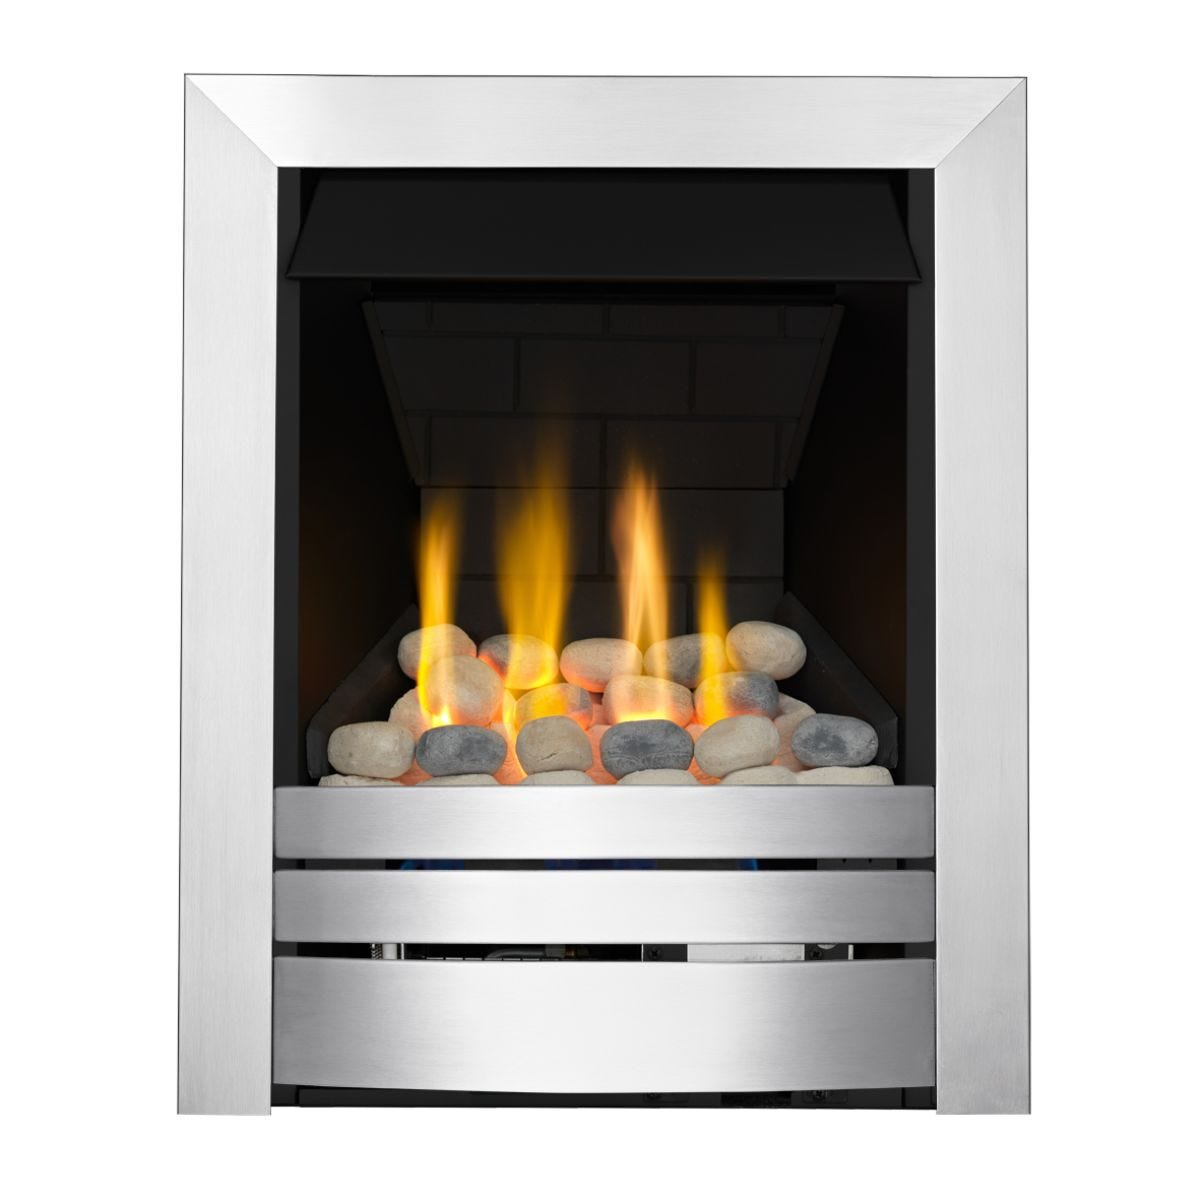 Focal Point Fires Lorient Brushed Steel Slimline Radiant Gas Fire - Chrome